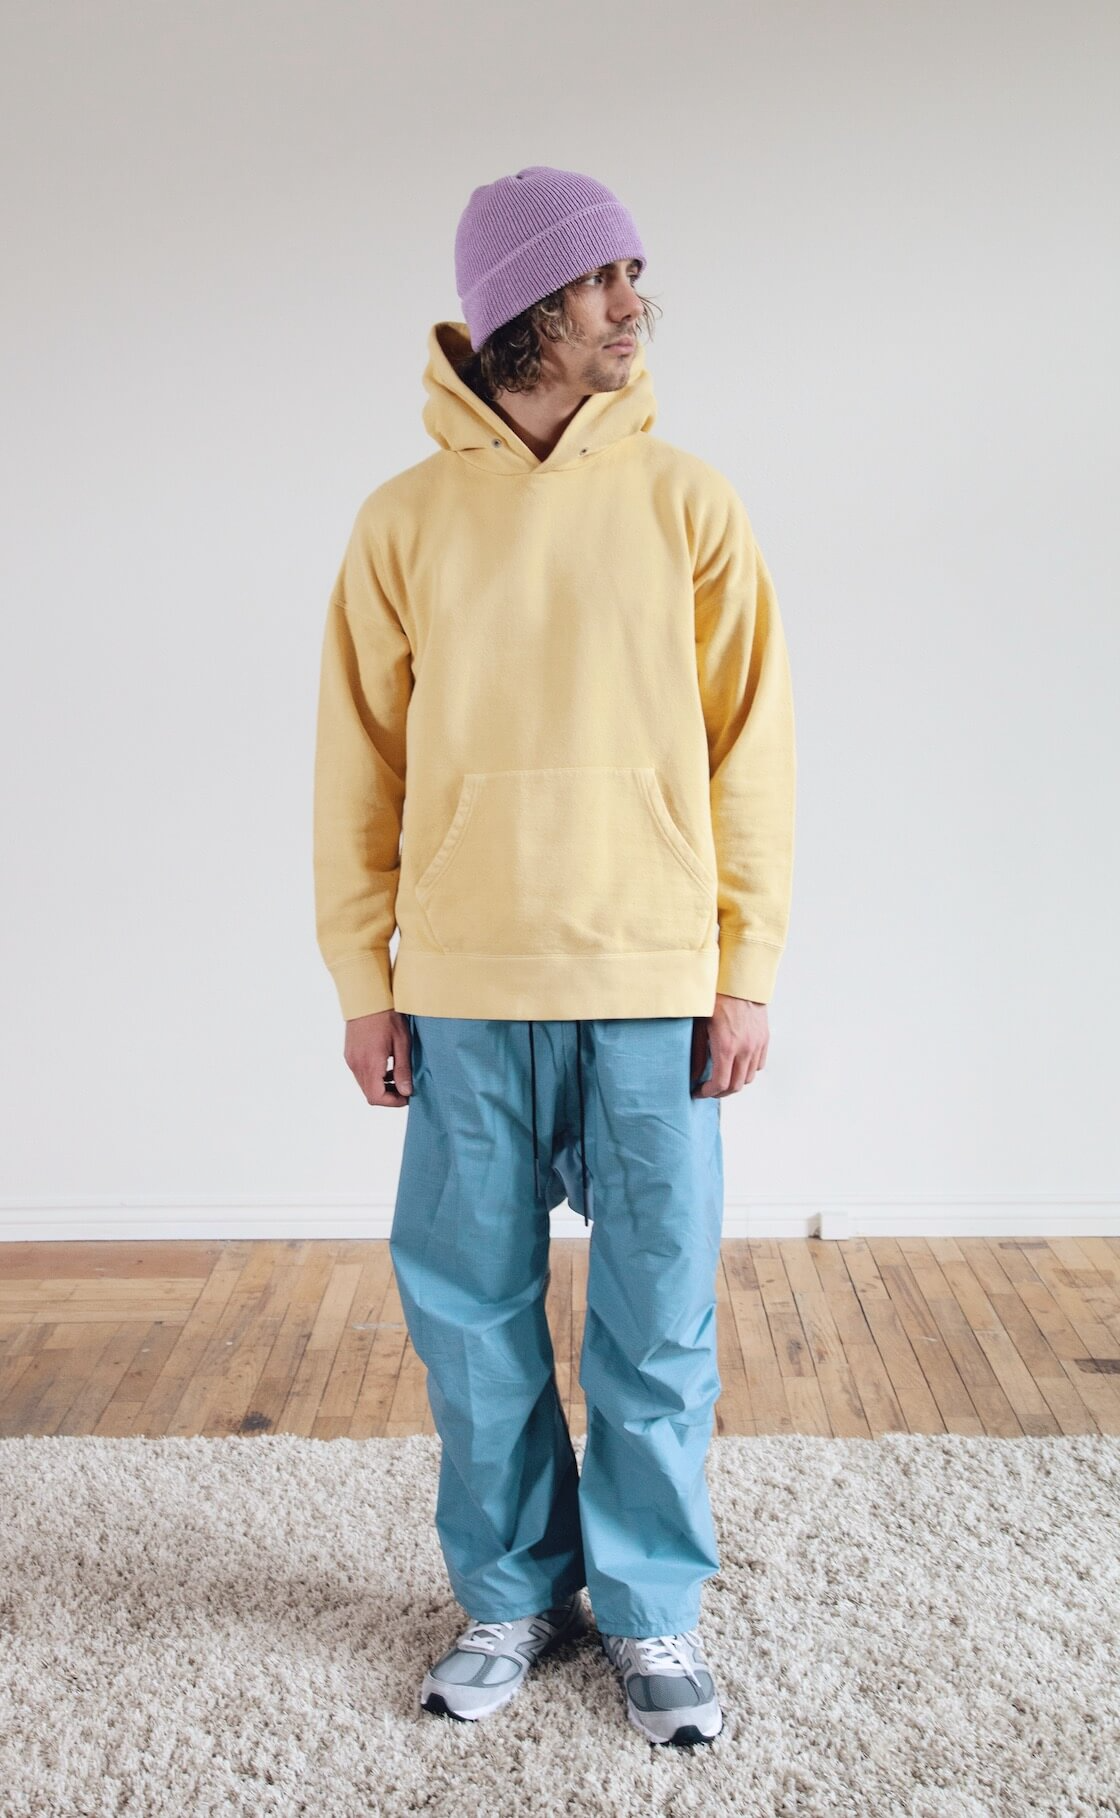 cableami linen waffle cap, visvim jumbo hoodie po, byborre weight map field cropped pants and new balance m990 shoes on body